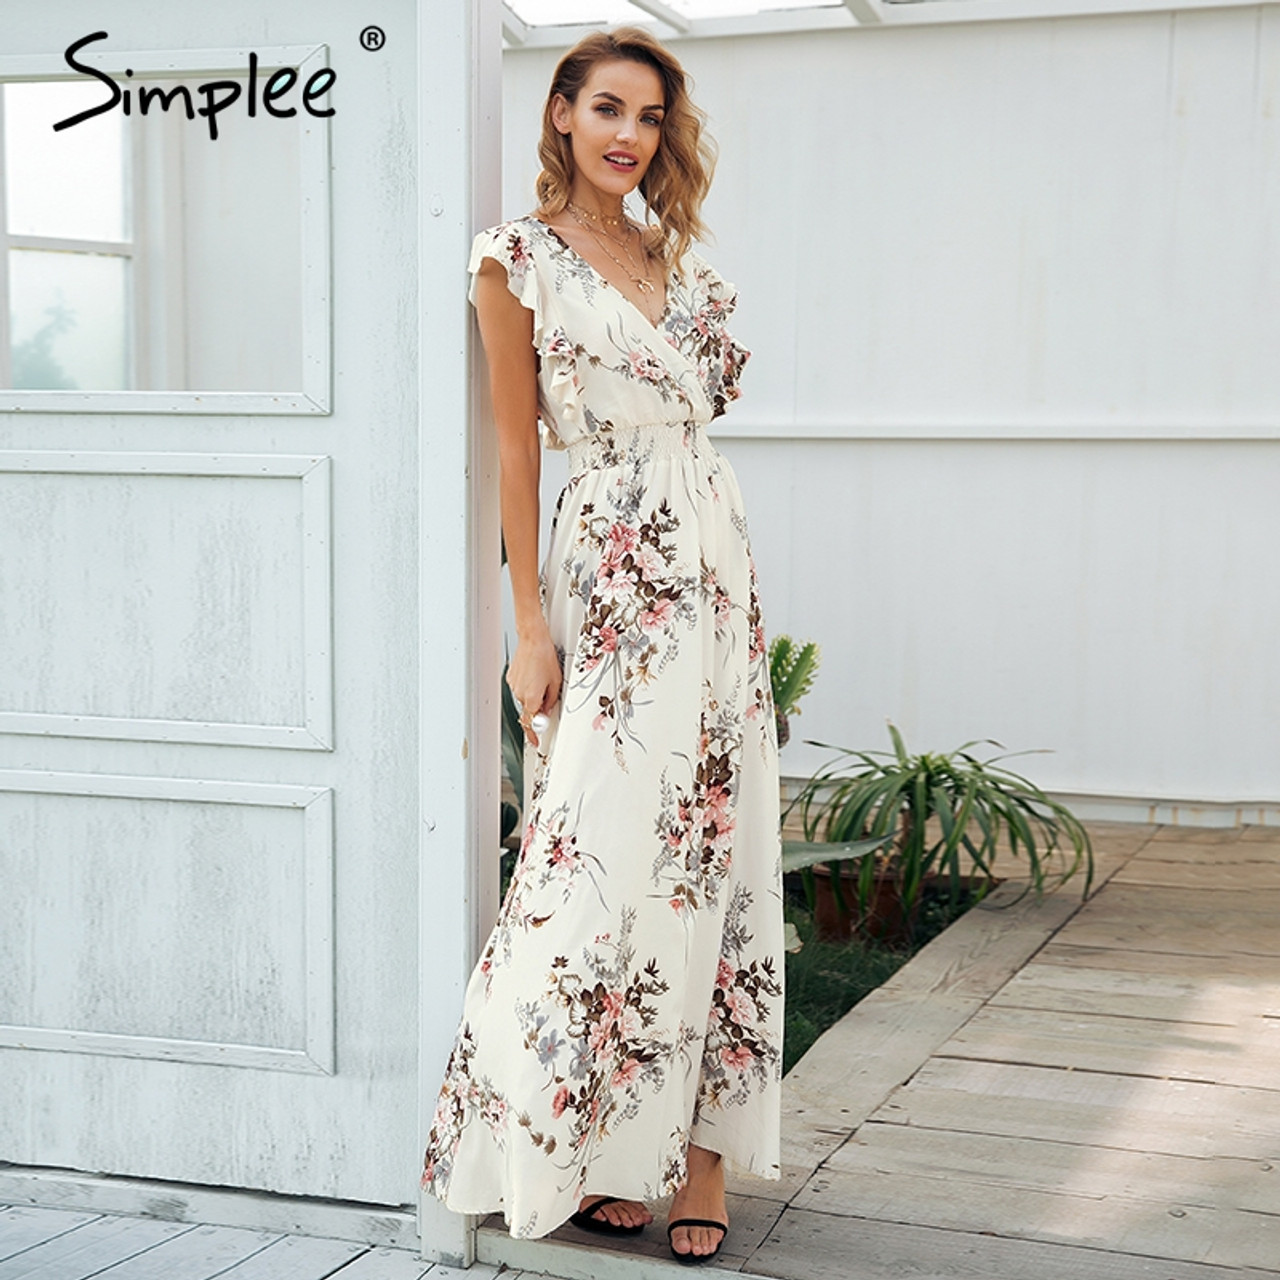 65f95e9910 ... Simplee Ruffle backless bow print long dress Women v neck tie up summer  dress female Casual ...